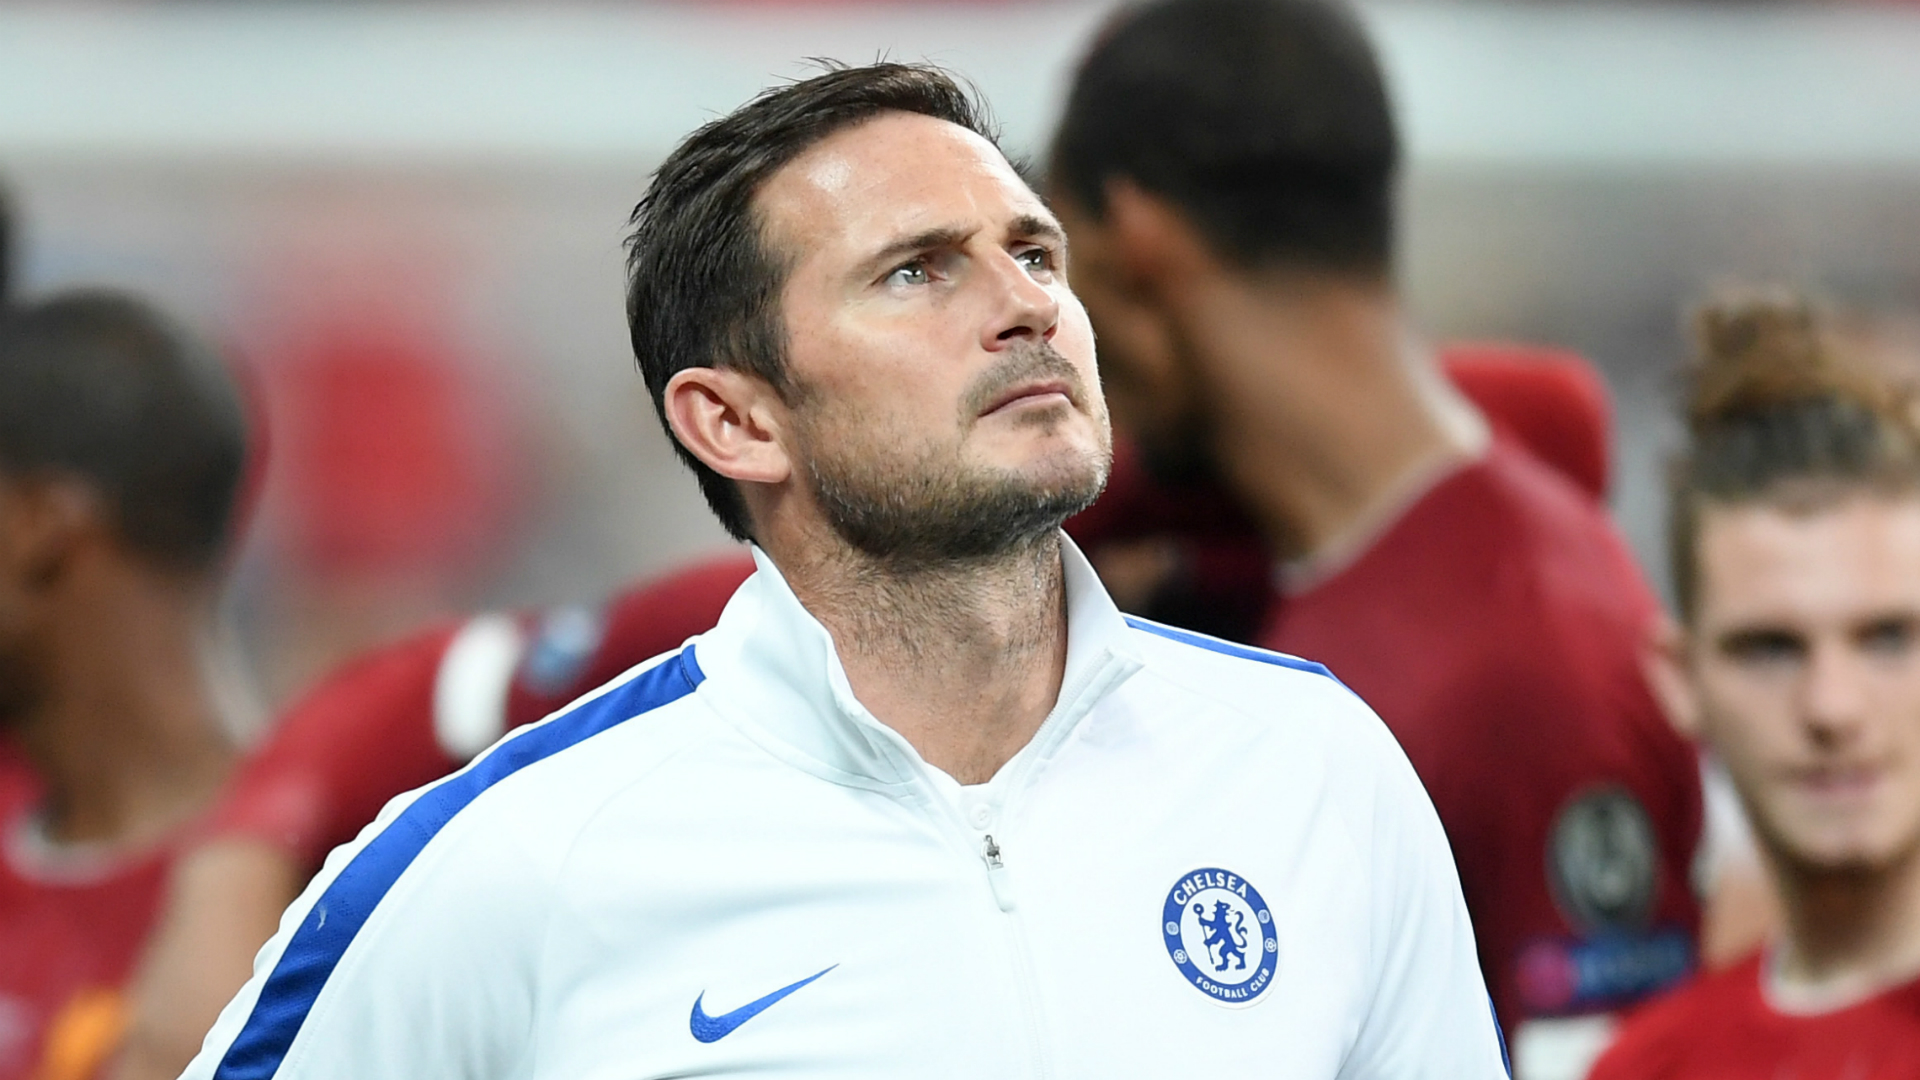 'Disgusted' Lampard slams racist abuse of Abraham